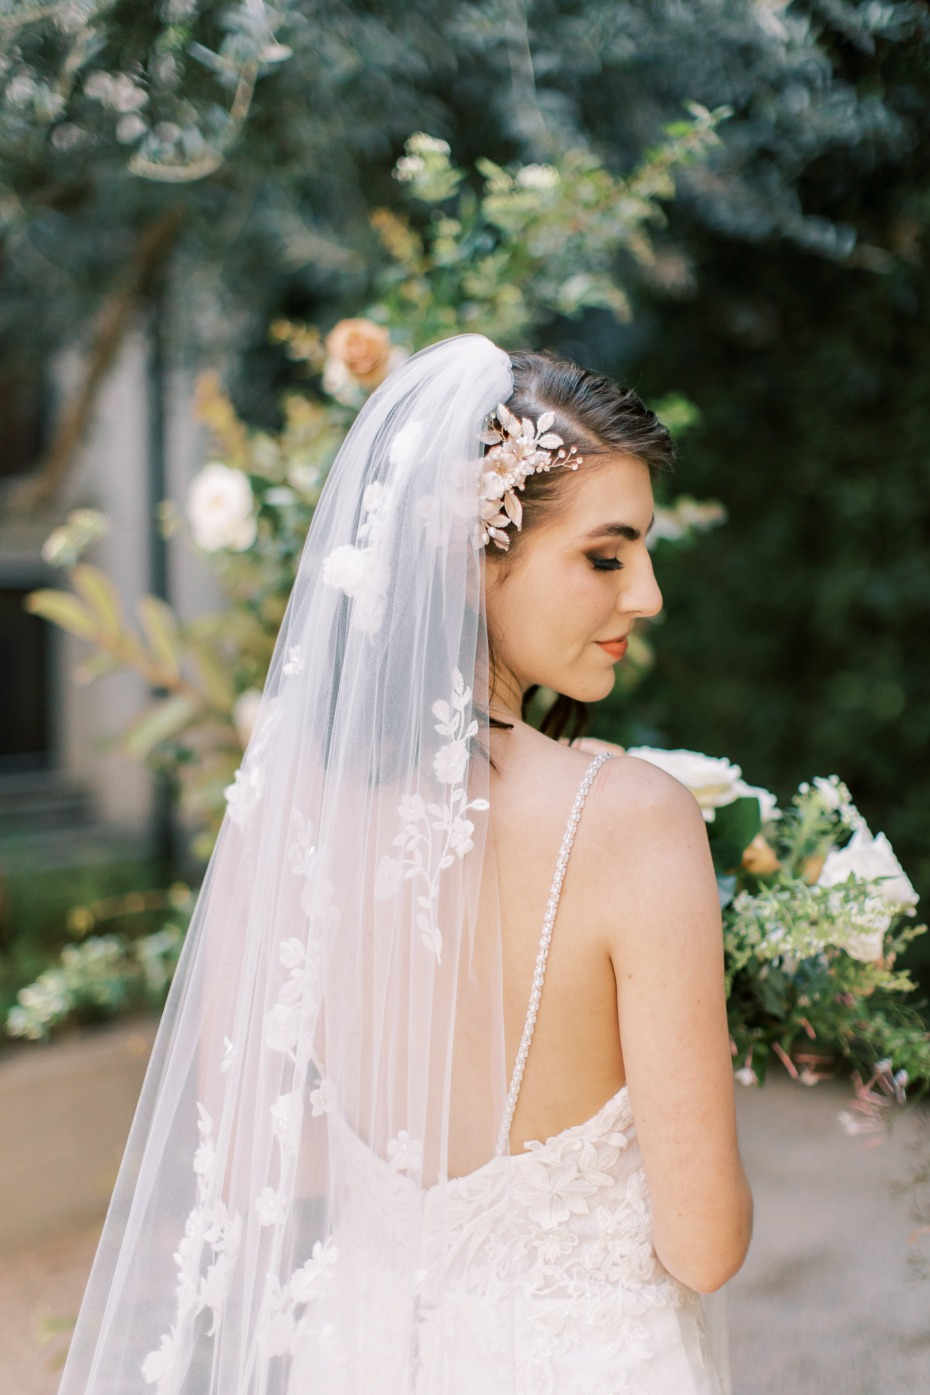 This Brand Will Turn a Made to Order Wedding Dress Around in 6 Weeks or Less